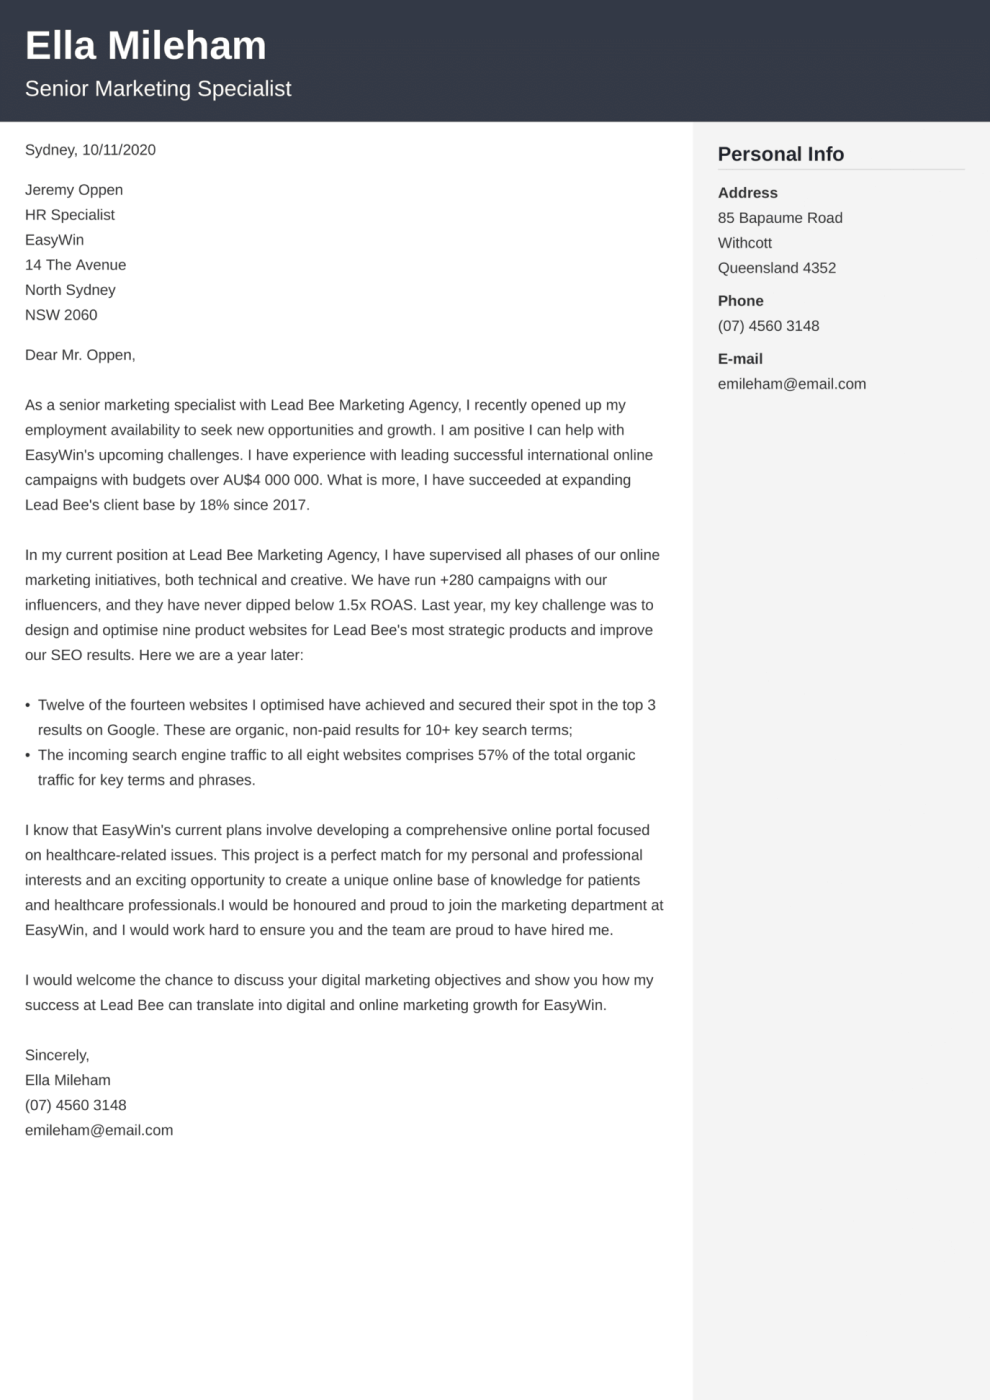 Cubic cover letter template